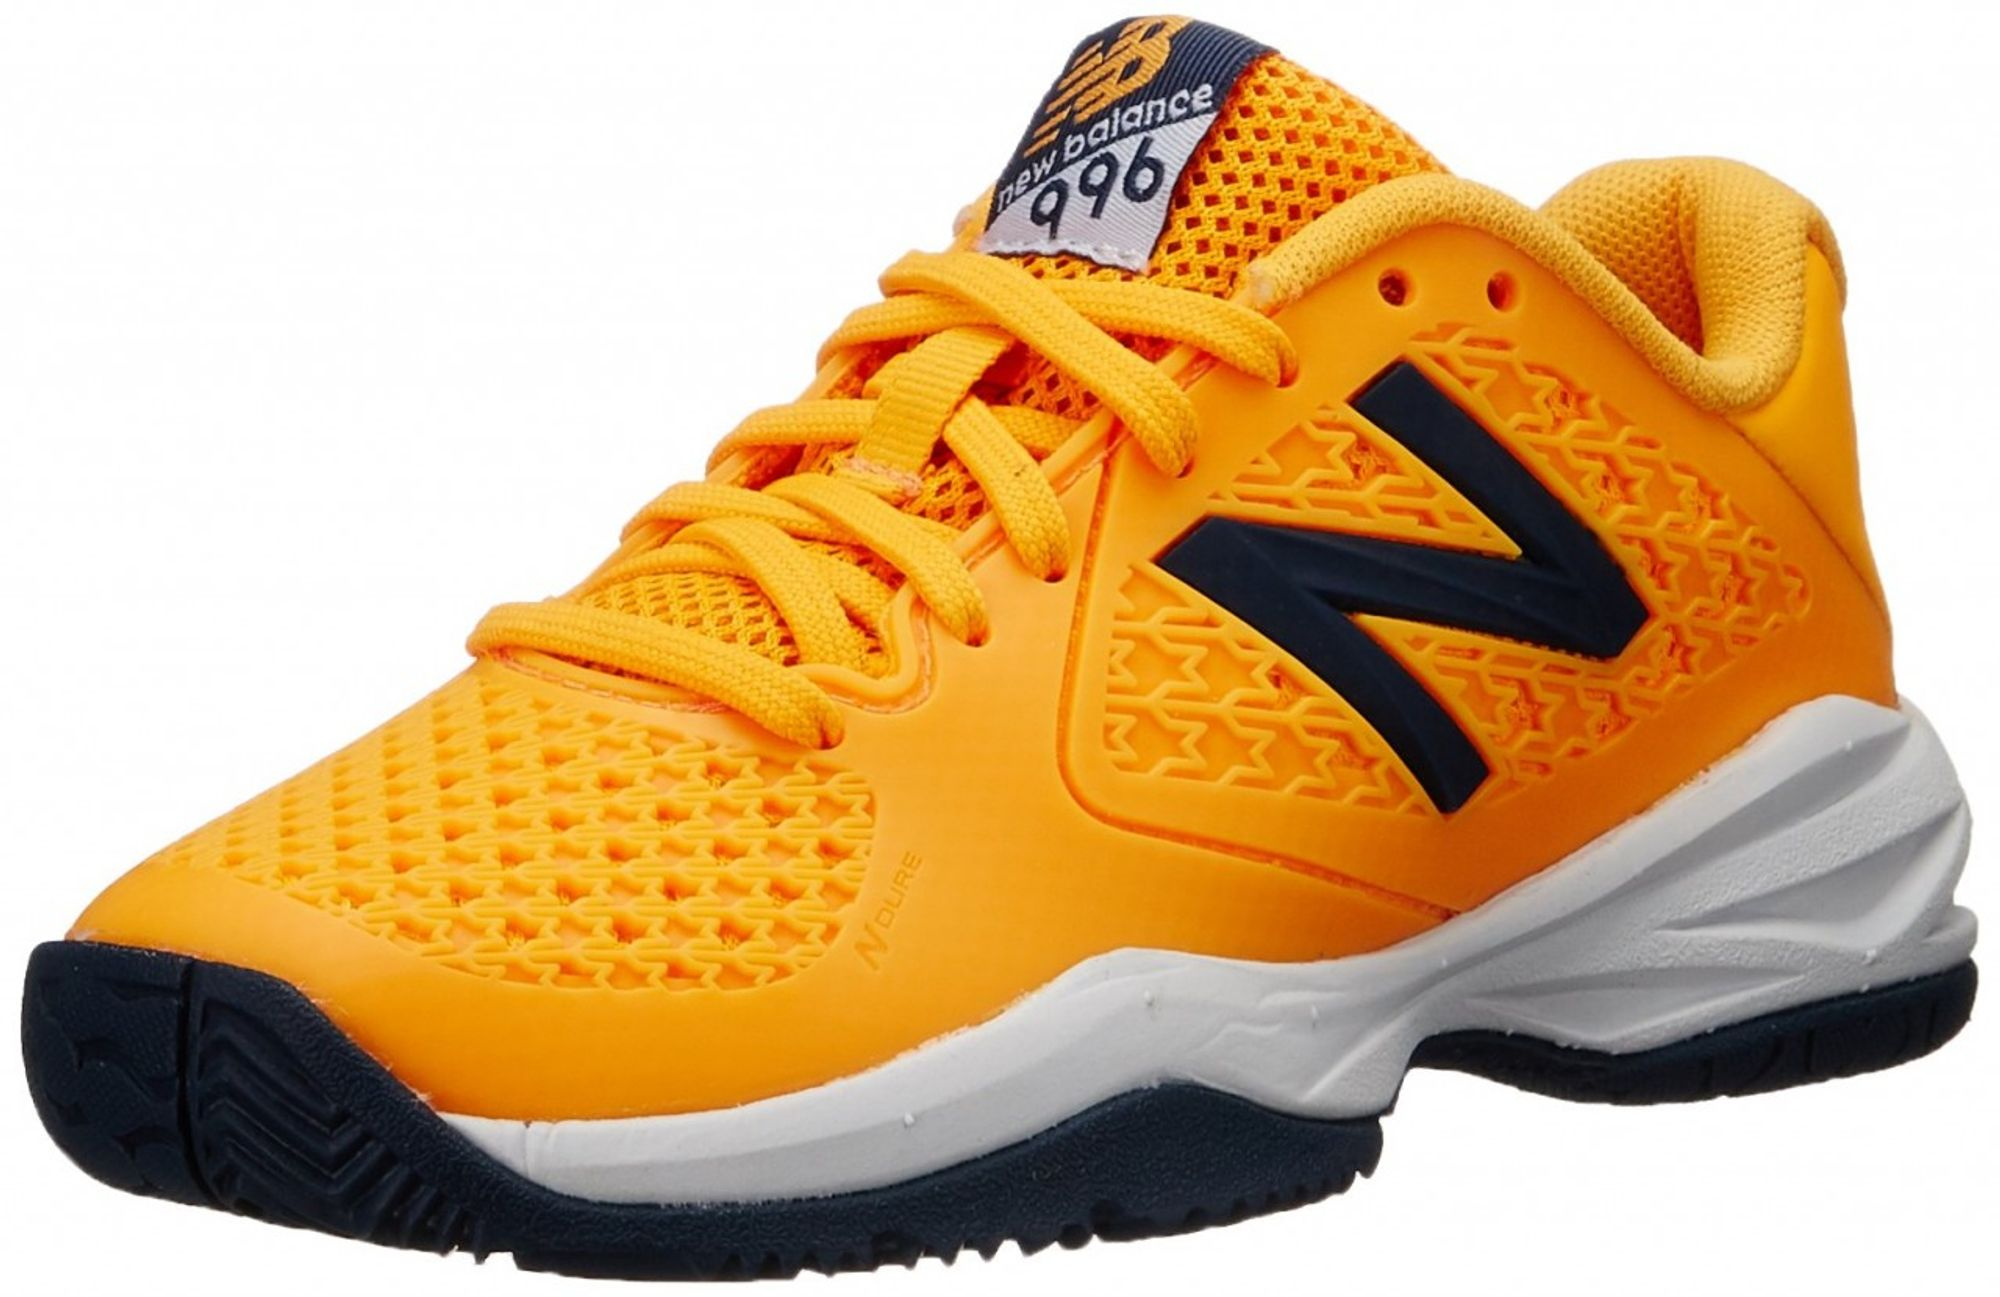 New Balance KC996 - ogy impulse